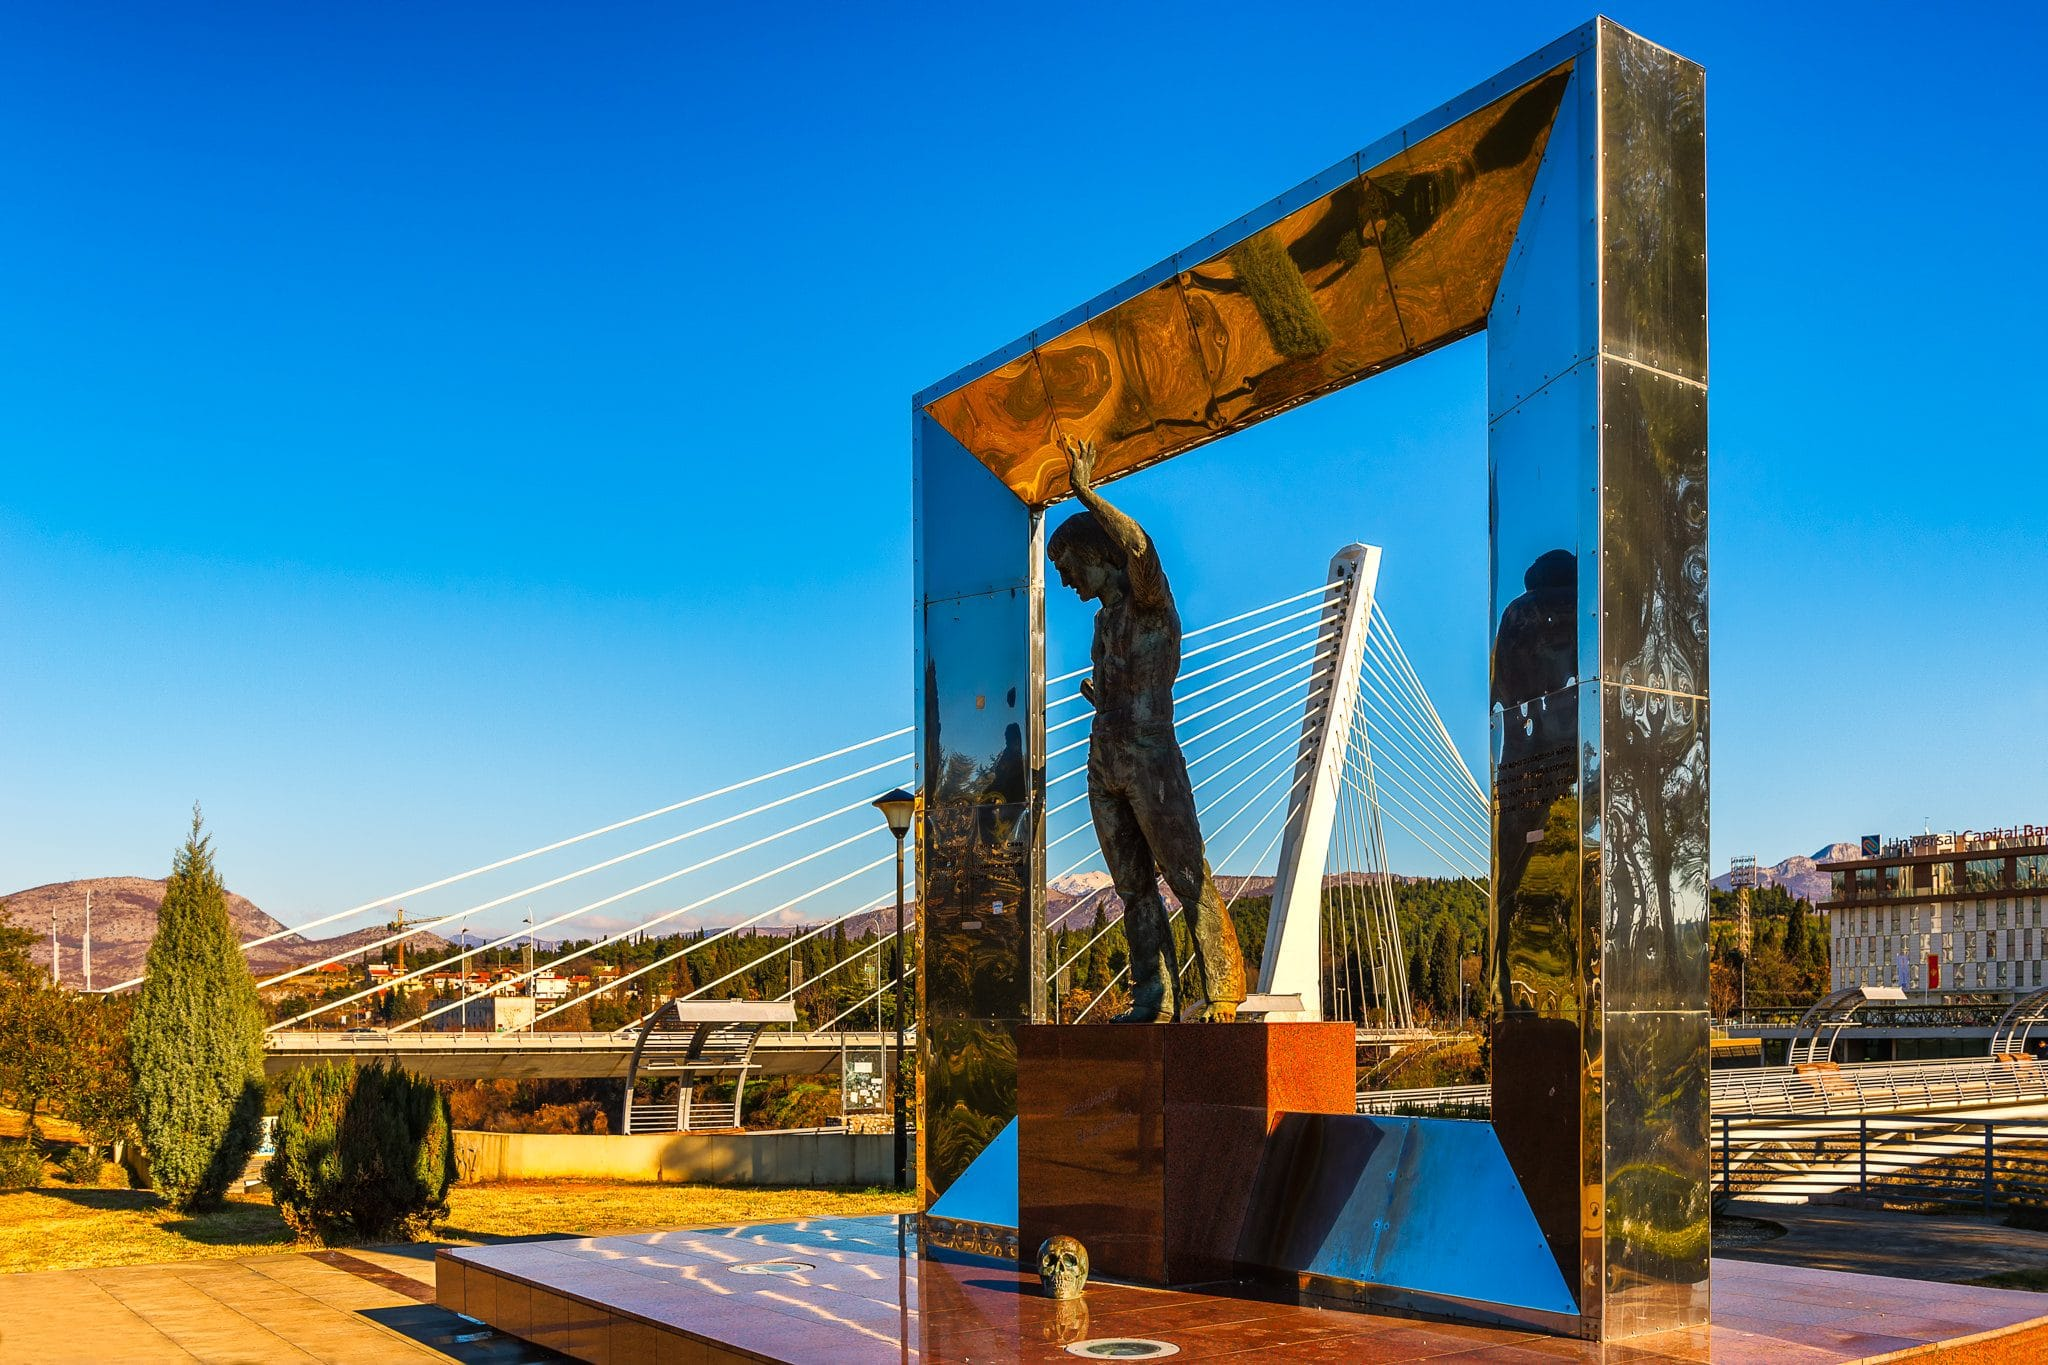 Vladimir Vysotsky Monument with Millennium Bridge in the background in Podgorica, Montenegro.